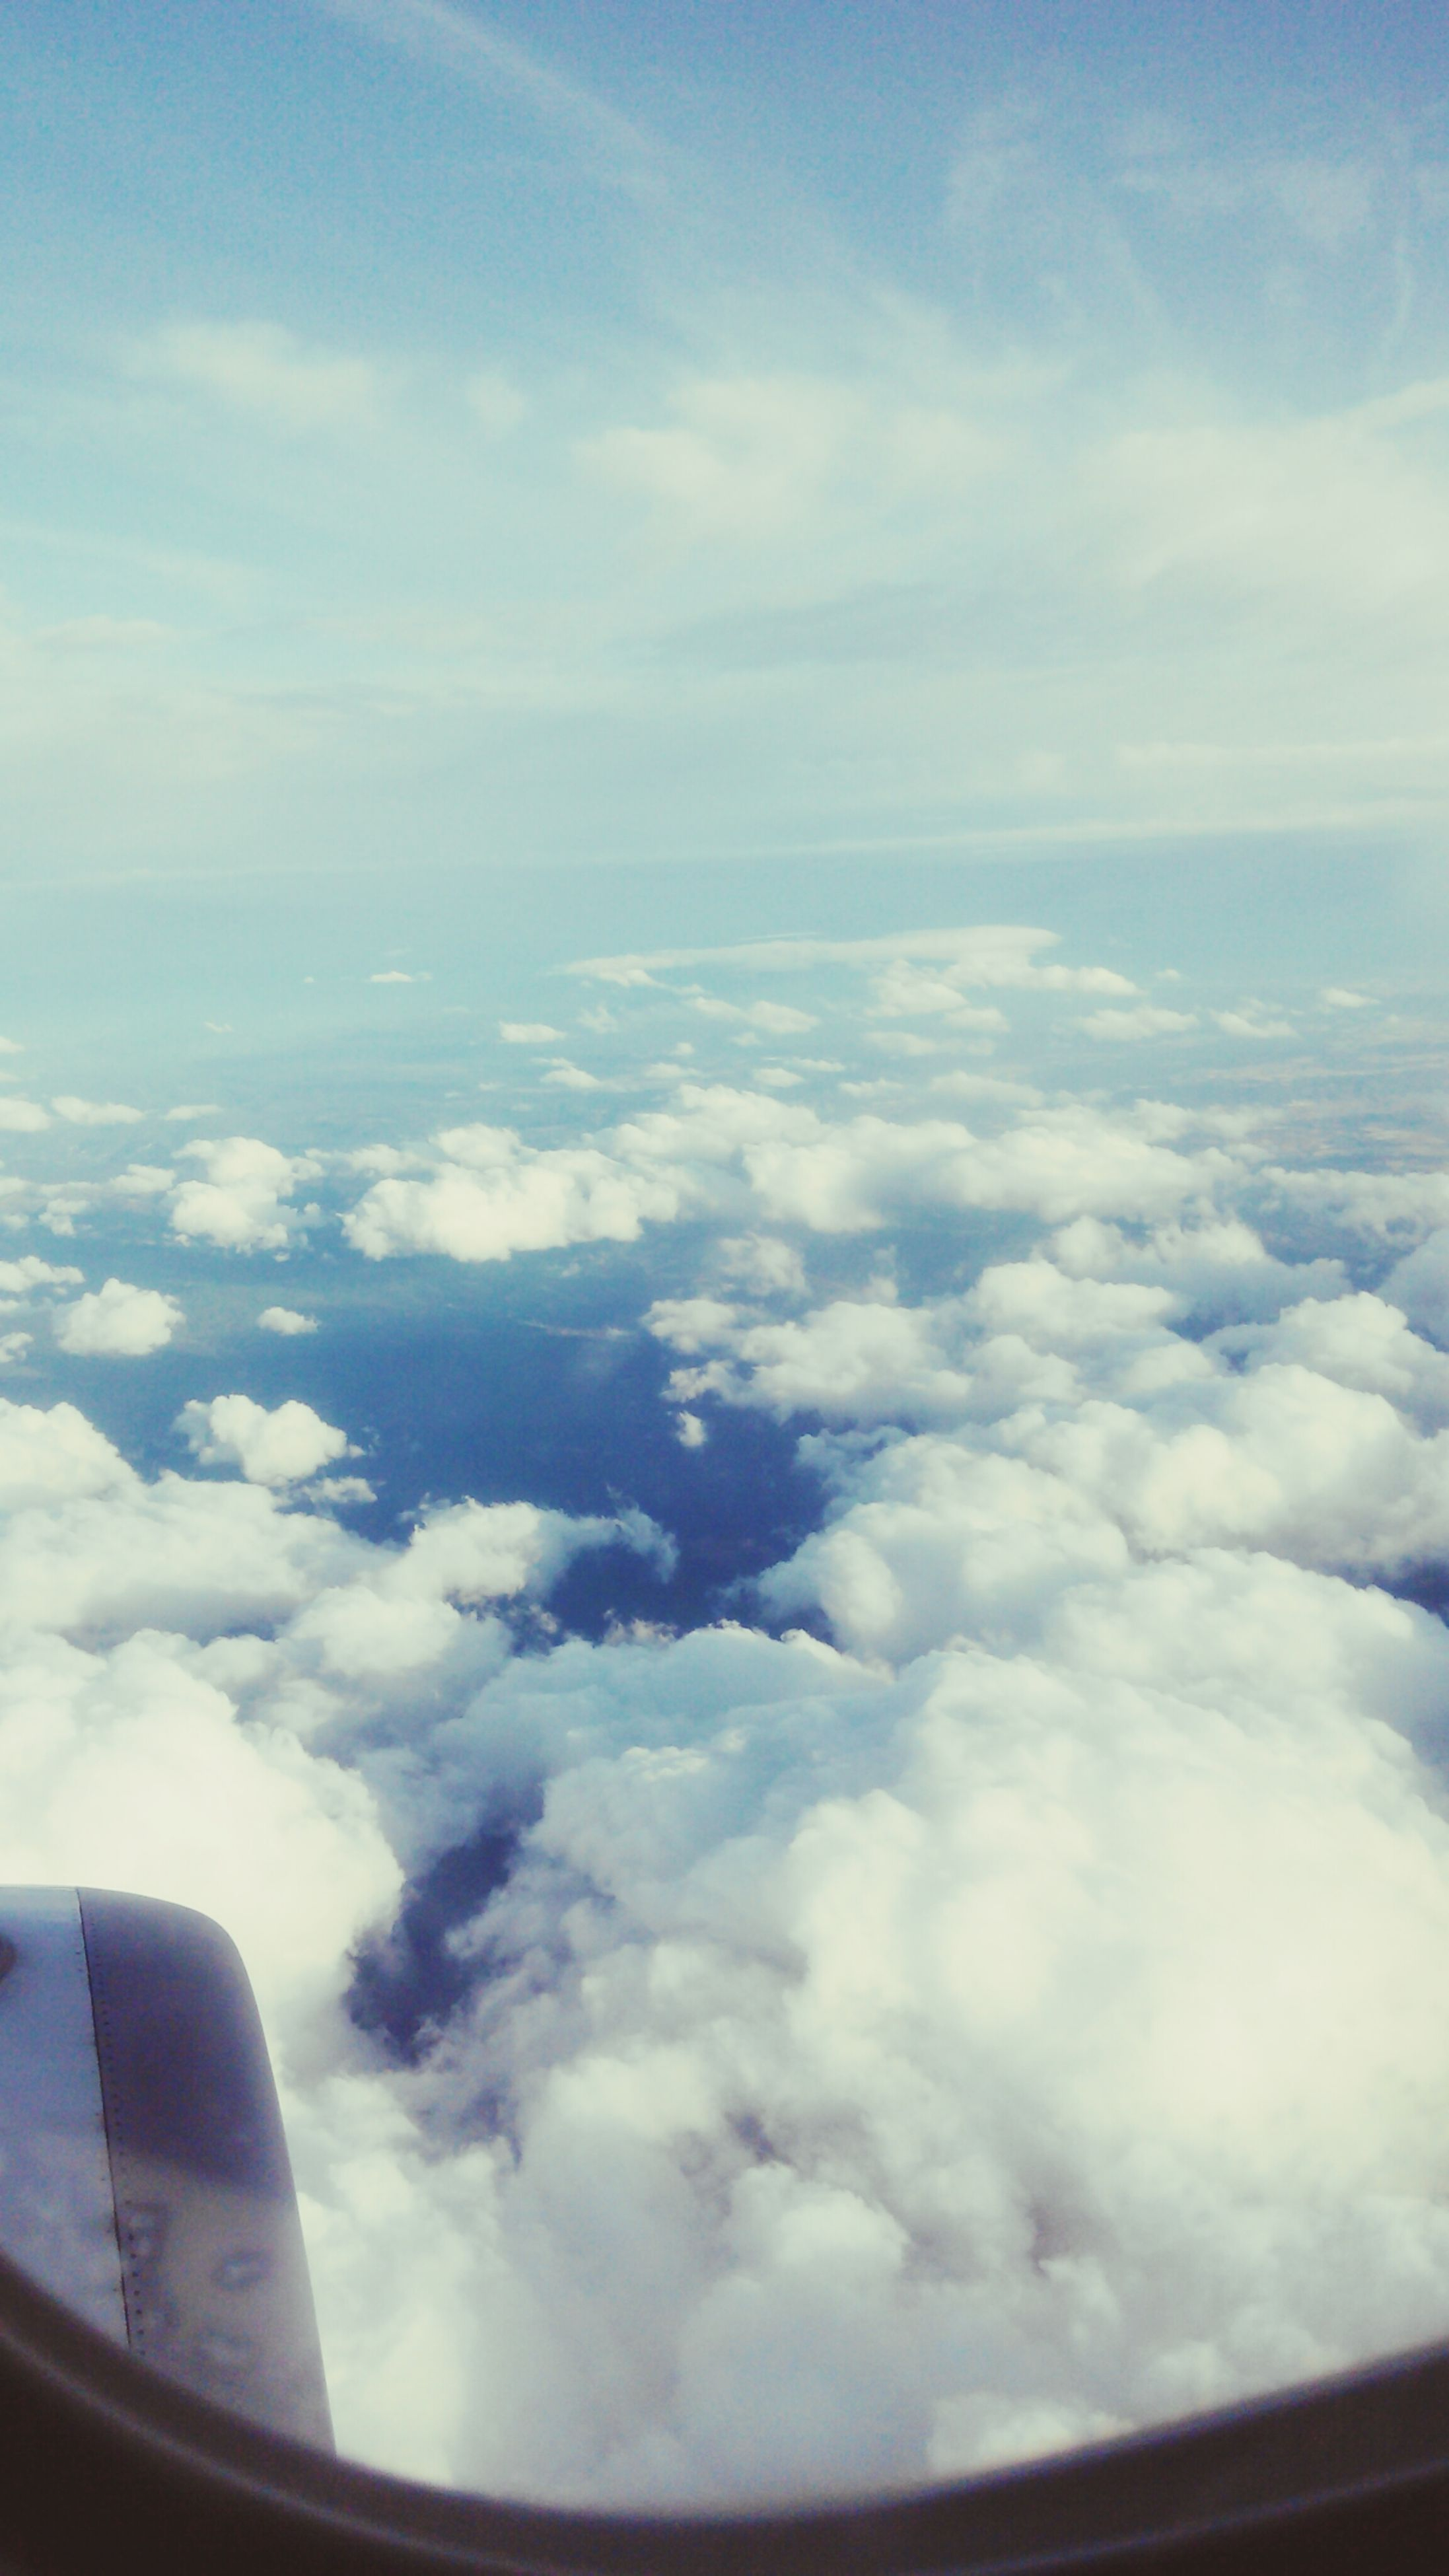 transportation, airplane, mode of transport, air vehicle, flying, part of, aircraft wing, aerial view, sky, cropped, vehicle interior, travel, cloud - sky, window, journey, mid-air, scenics, on the move, beauty in nature, glass - material